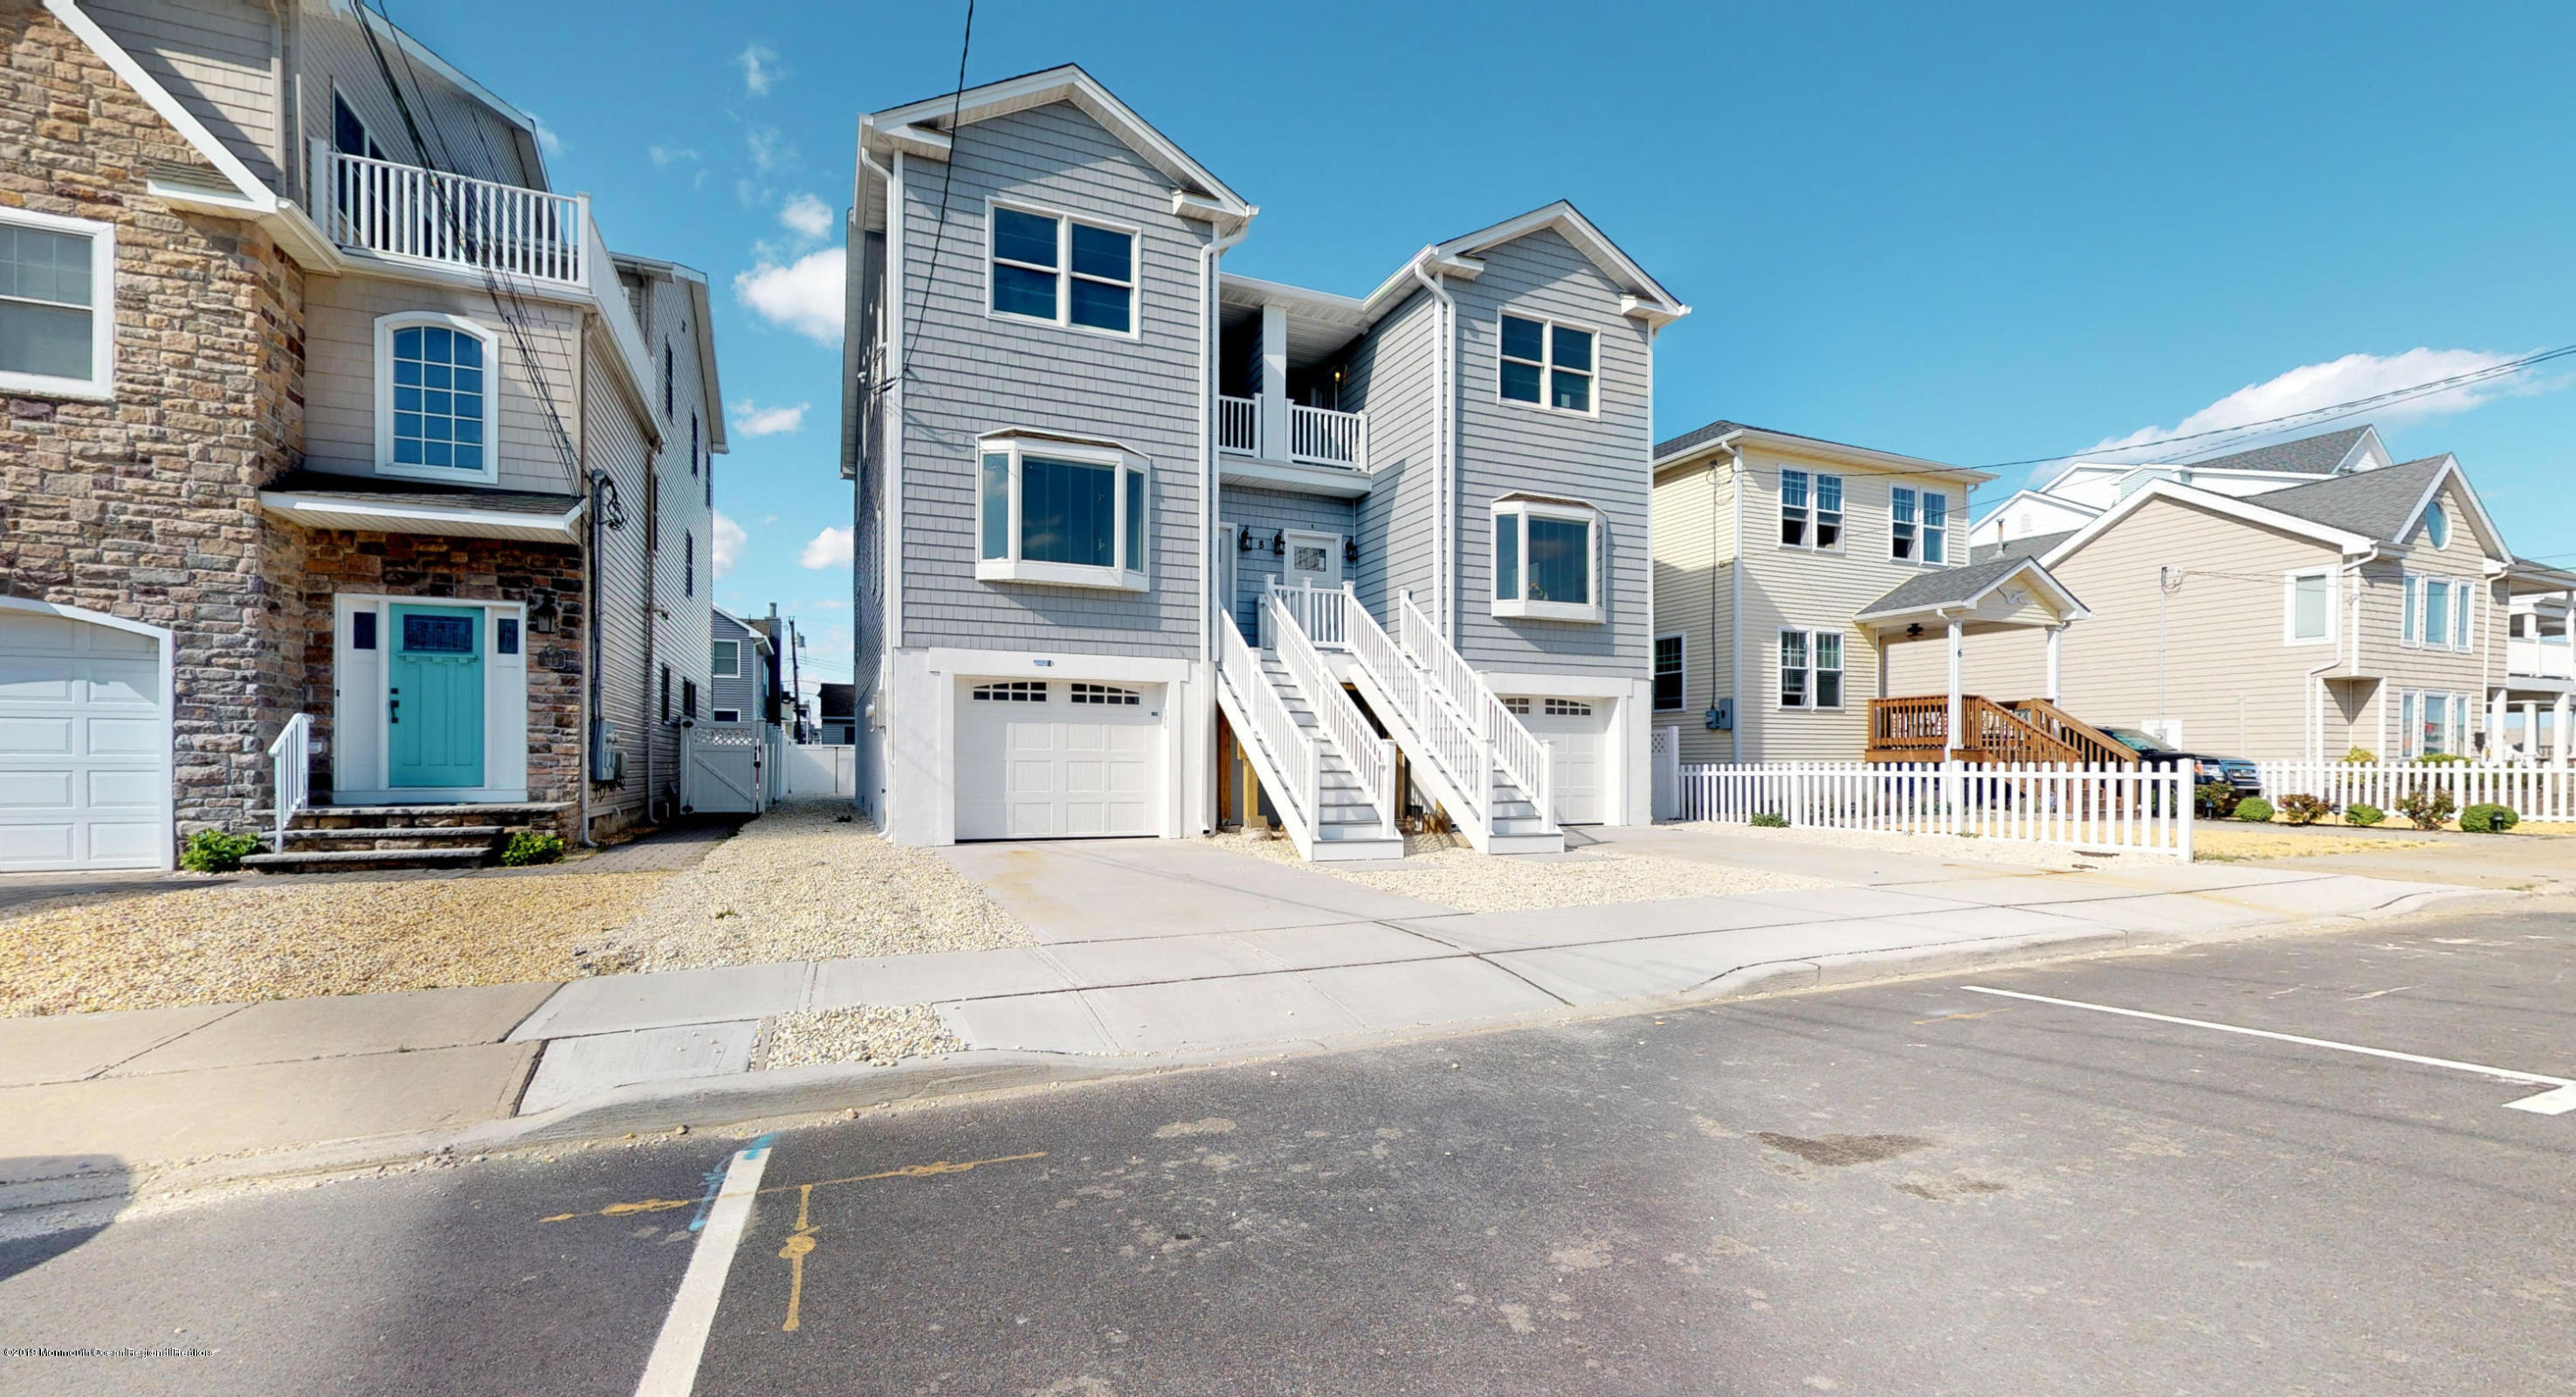 Property for sale at 8 7th Avenue # A, Ortley Beach,  New Jersey 08751